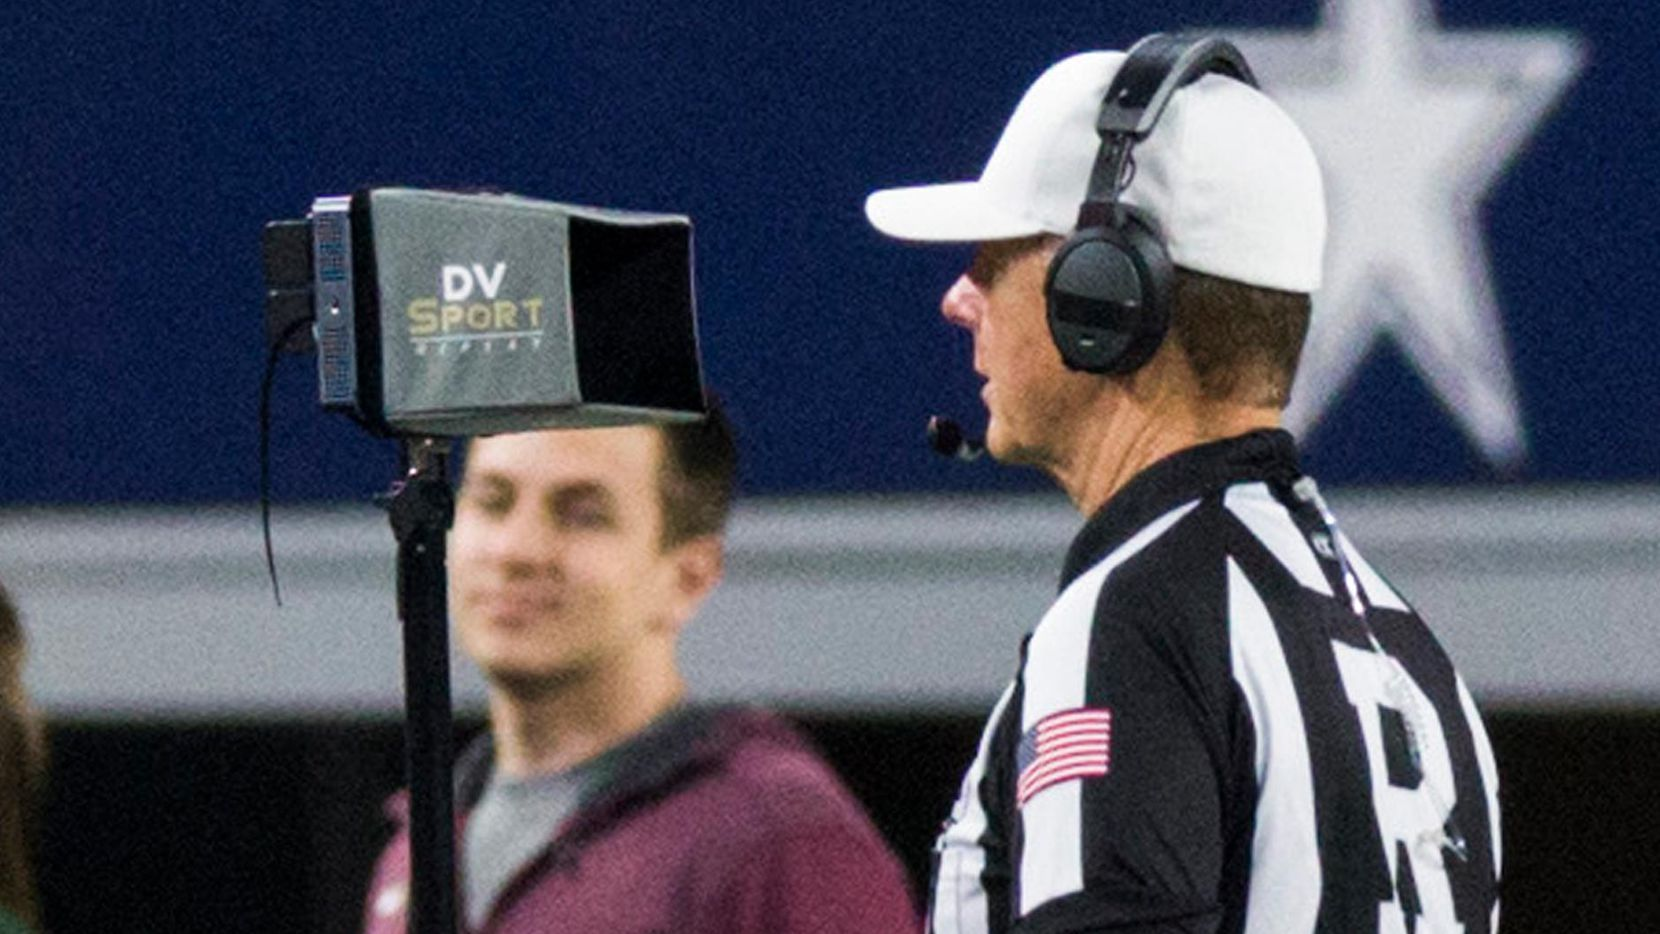 Referee Bill Tilley watches the instant replay screen on the sideline after a fumble turnover during the fourth quarter of the UIL 4A Division I state championship game between Waco La Vega and Liberty Hill on Friday, December 21, 2018 at AT&T Stadium in Arlington. (Ashley Landis/The Dallas Morning News)